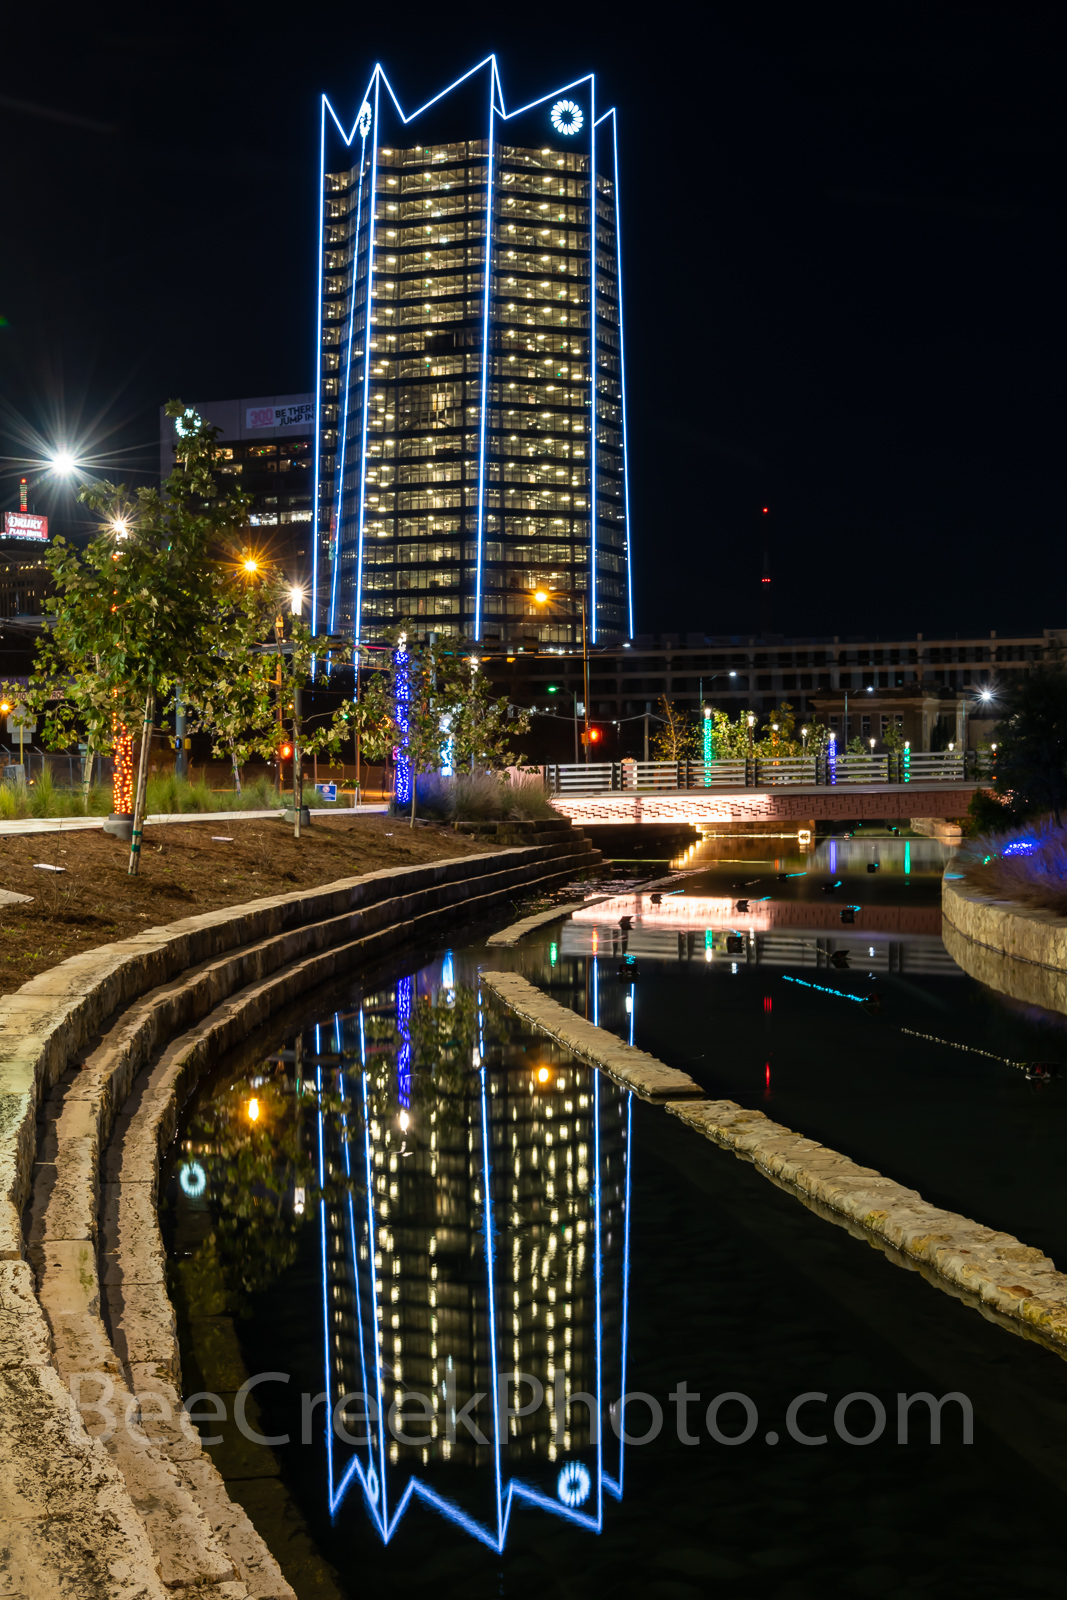 San Antonio, Frost Tower, San Pedro Creek, reflections, water, boardwalk,vertical, Christmas, holiday, lights, color lights in the water,, photo